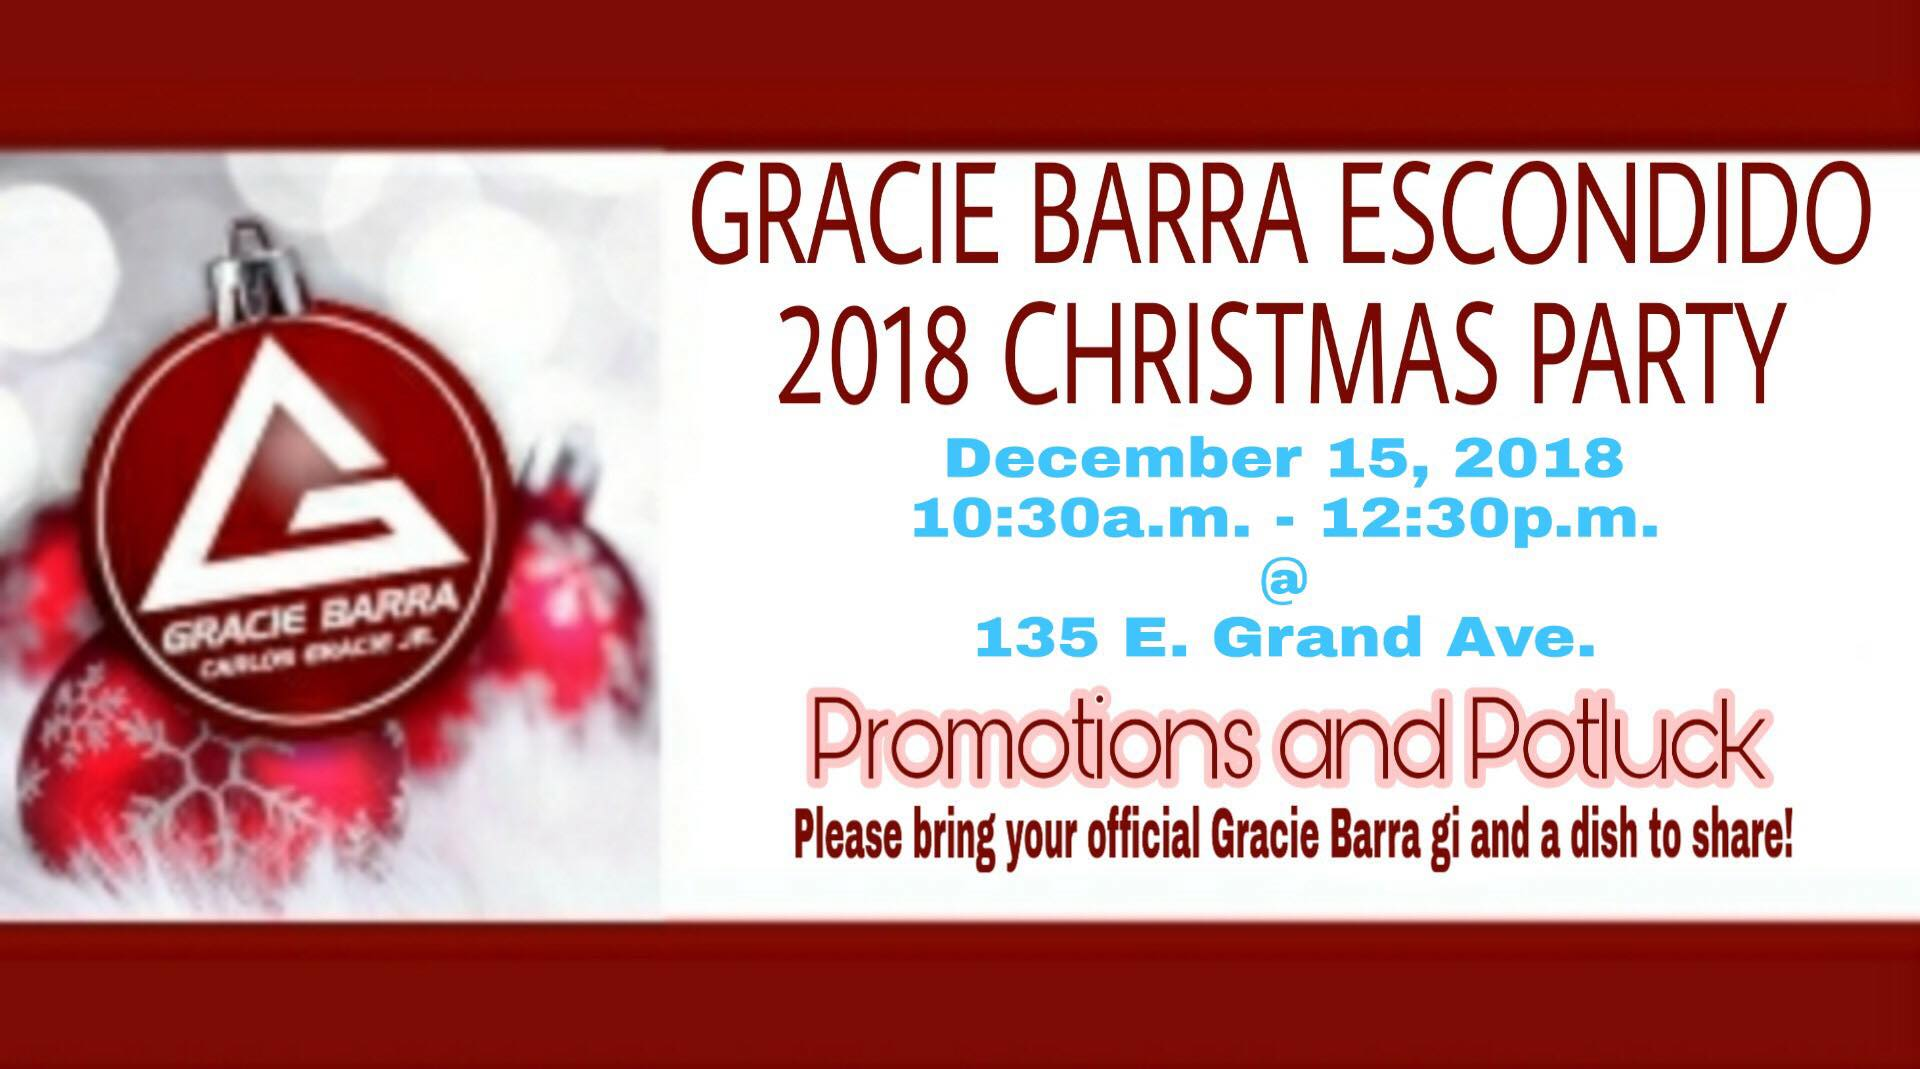 Gracie Barra Escondido 2018 Christmas Party